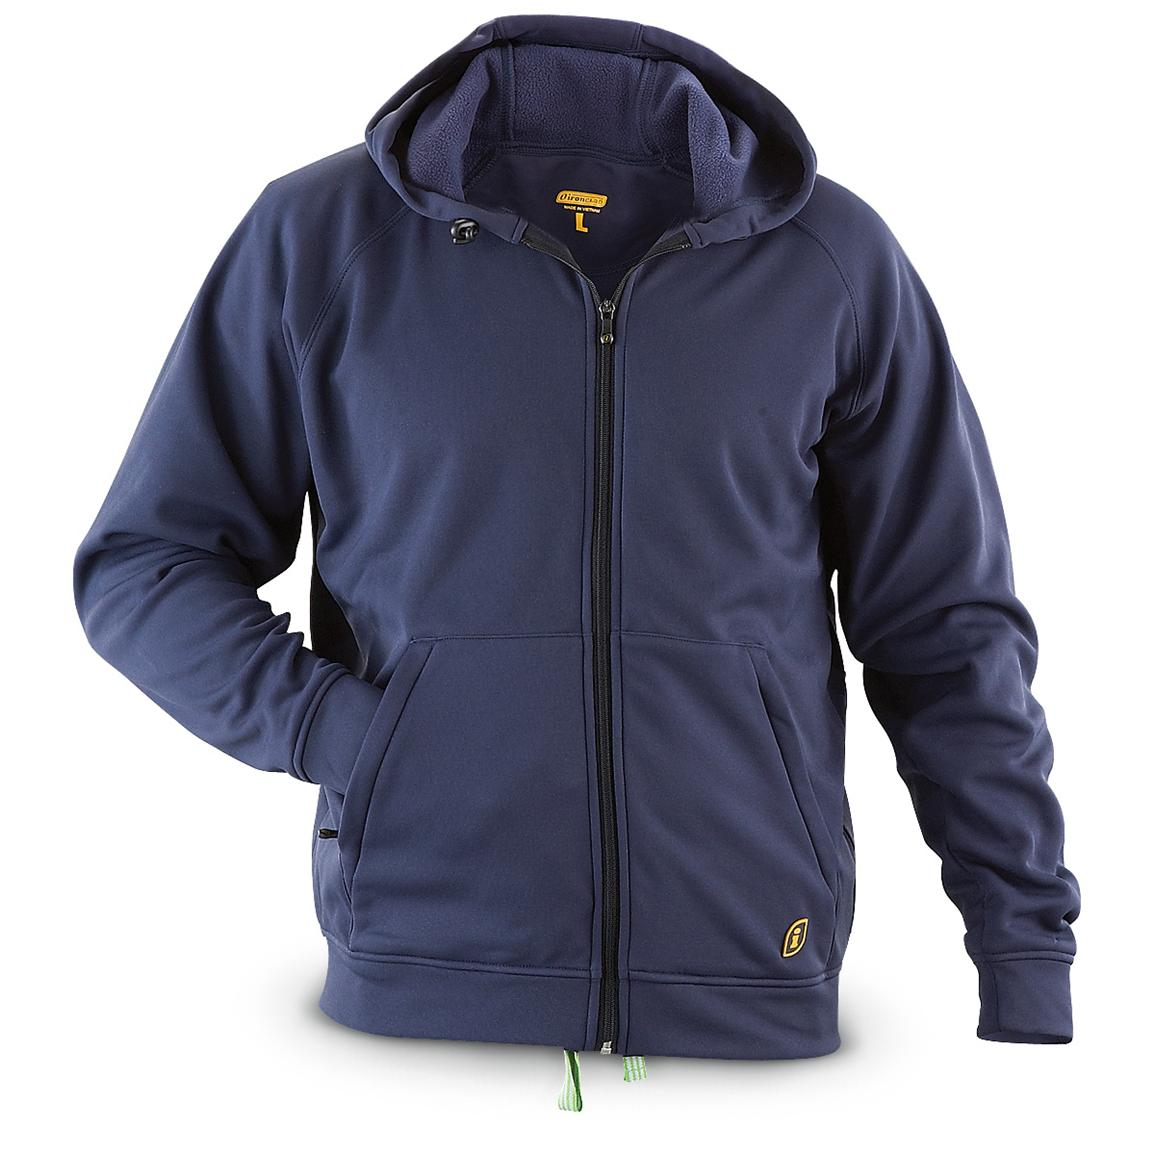 Ironclad® Full-zip Performance Hoodie Jacket, Navy